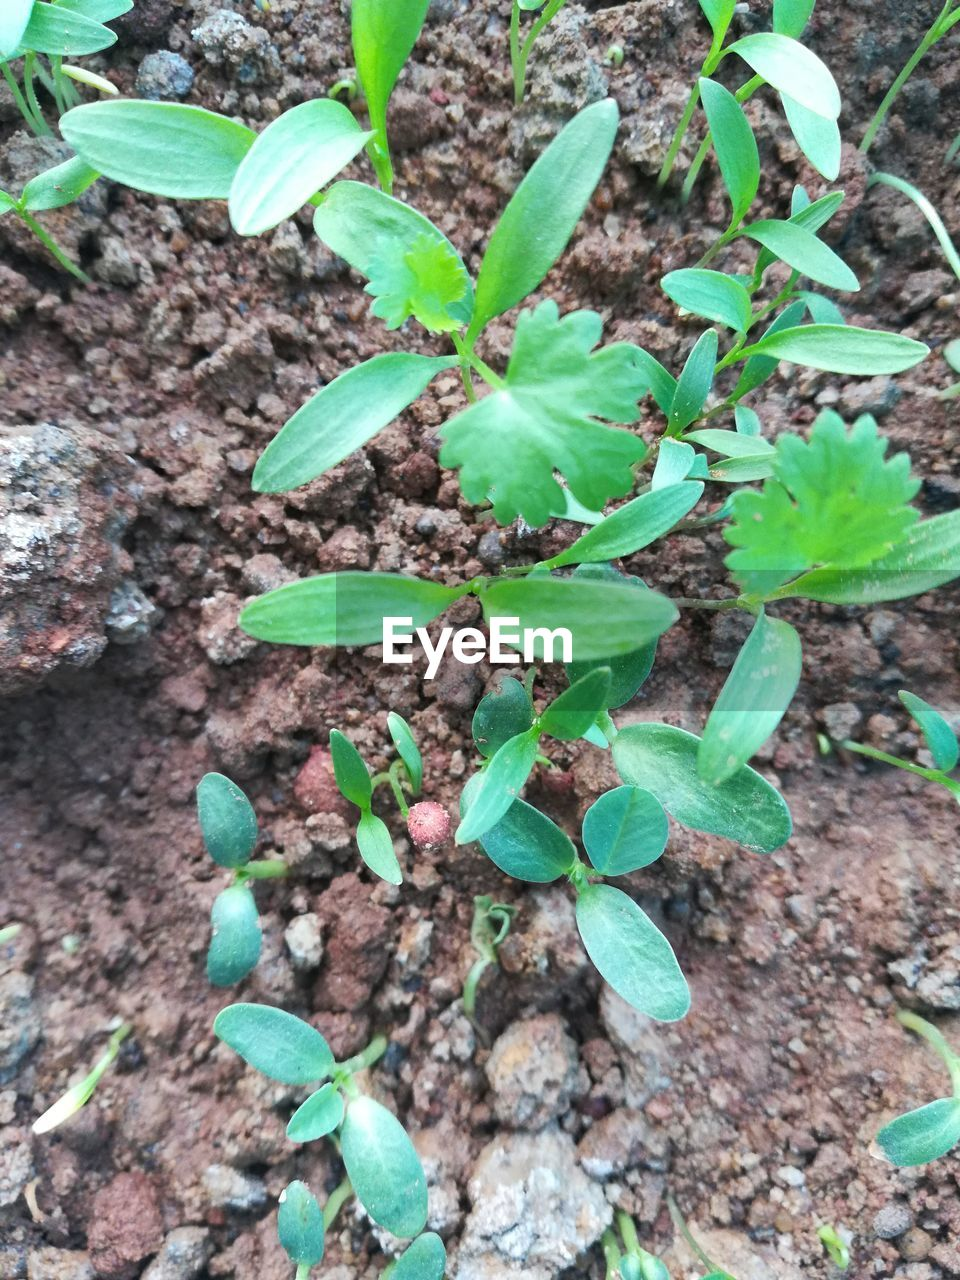 growth, leaf, plant part, green color, plant, nature, high angle view, field, land, no people, day, beauty in nature, close-up, dirt, freshness, outdoors, tranquility, botany, vulnerability, fragility, plantation